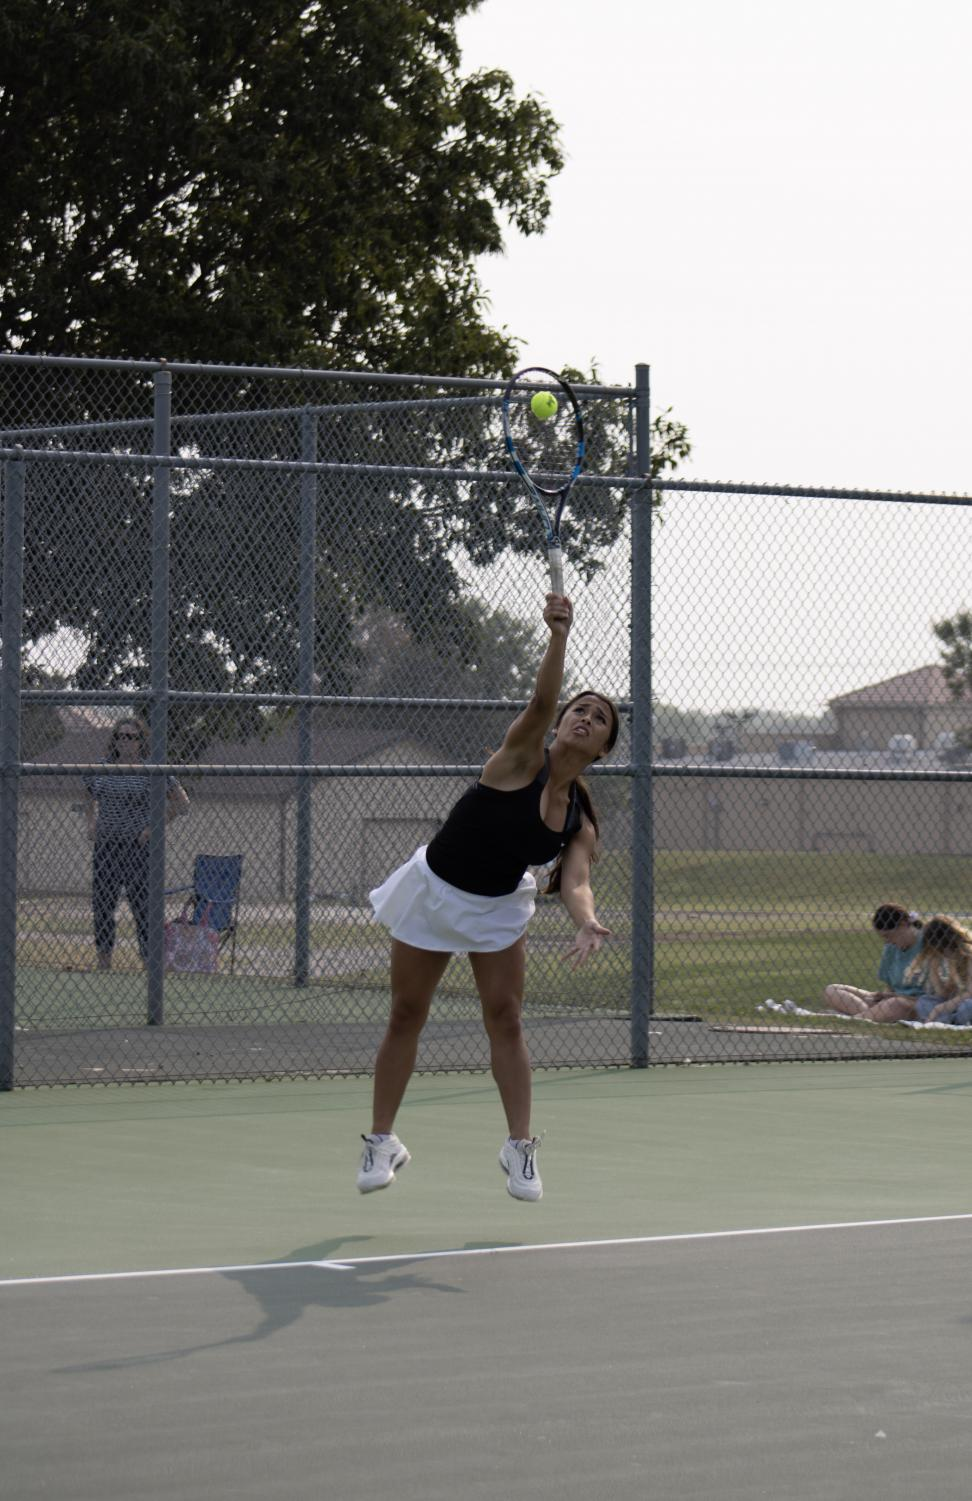 Home+Varsity+Tennis+Meet+%28Photos+by+Hailey+Jeffery%29